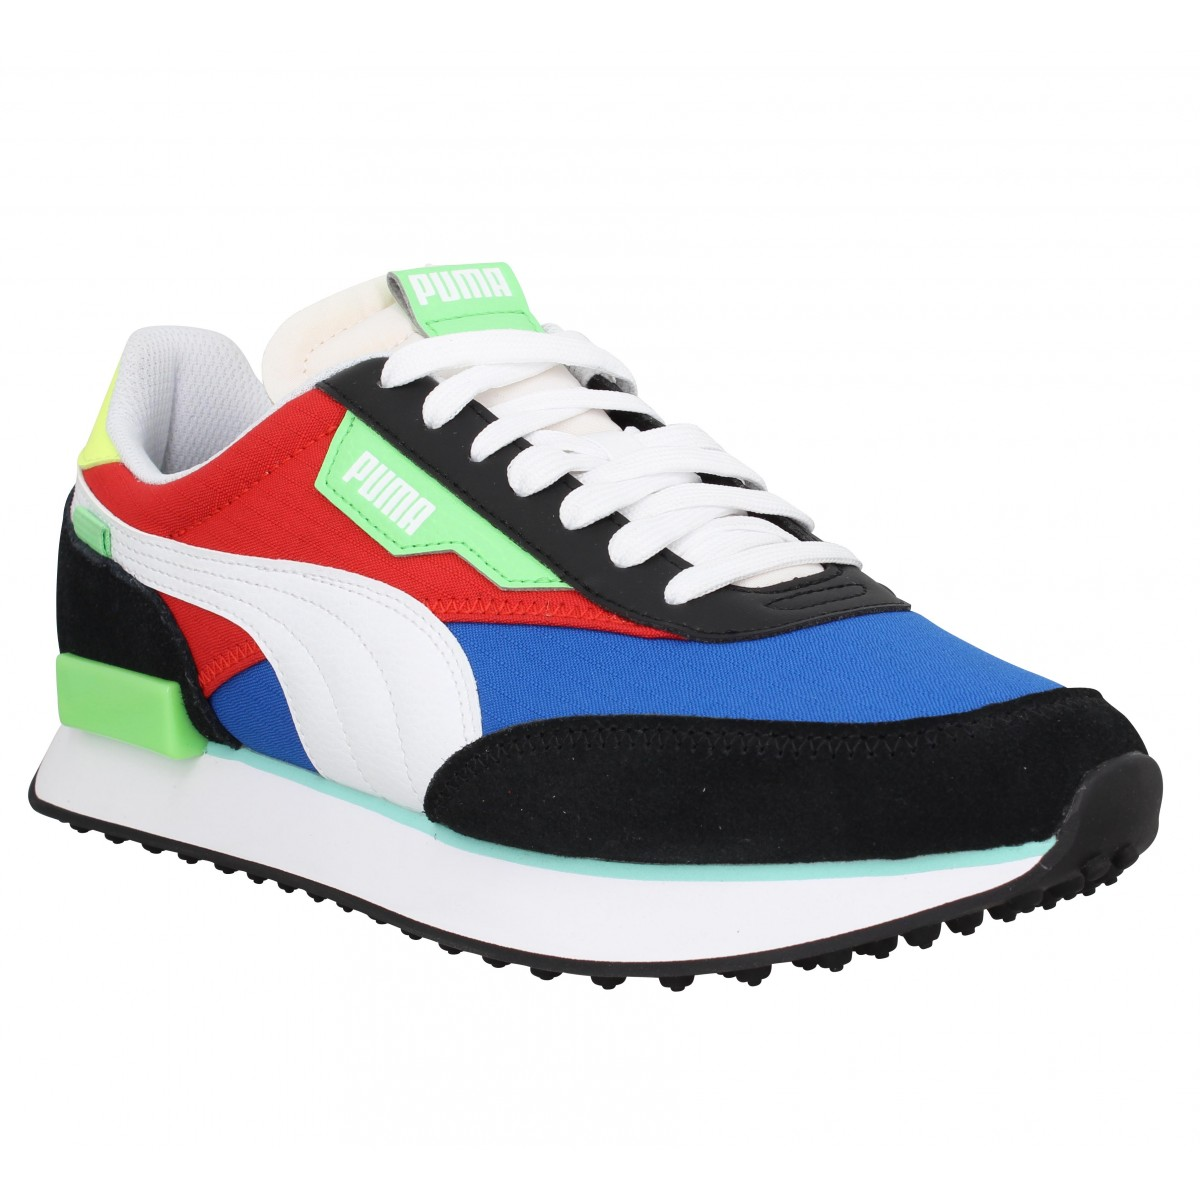 Baskets PUMA Future Rider Play On velours toile Homme Bleu Rouge